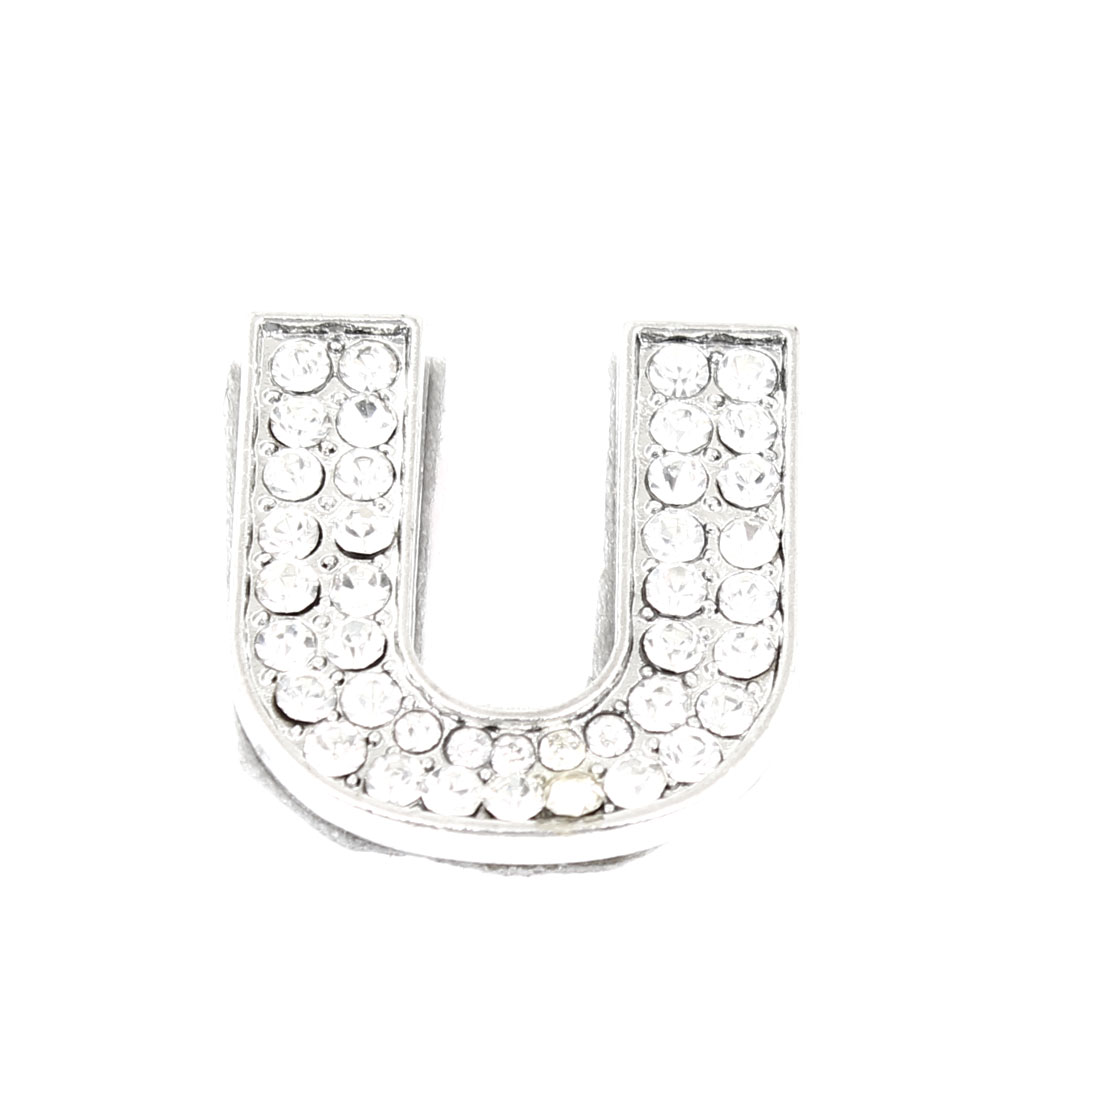 Rhinestones Detail Silver Tone Letter U Shaped Sticker Decoration for Car Truck